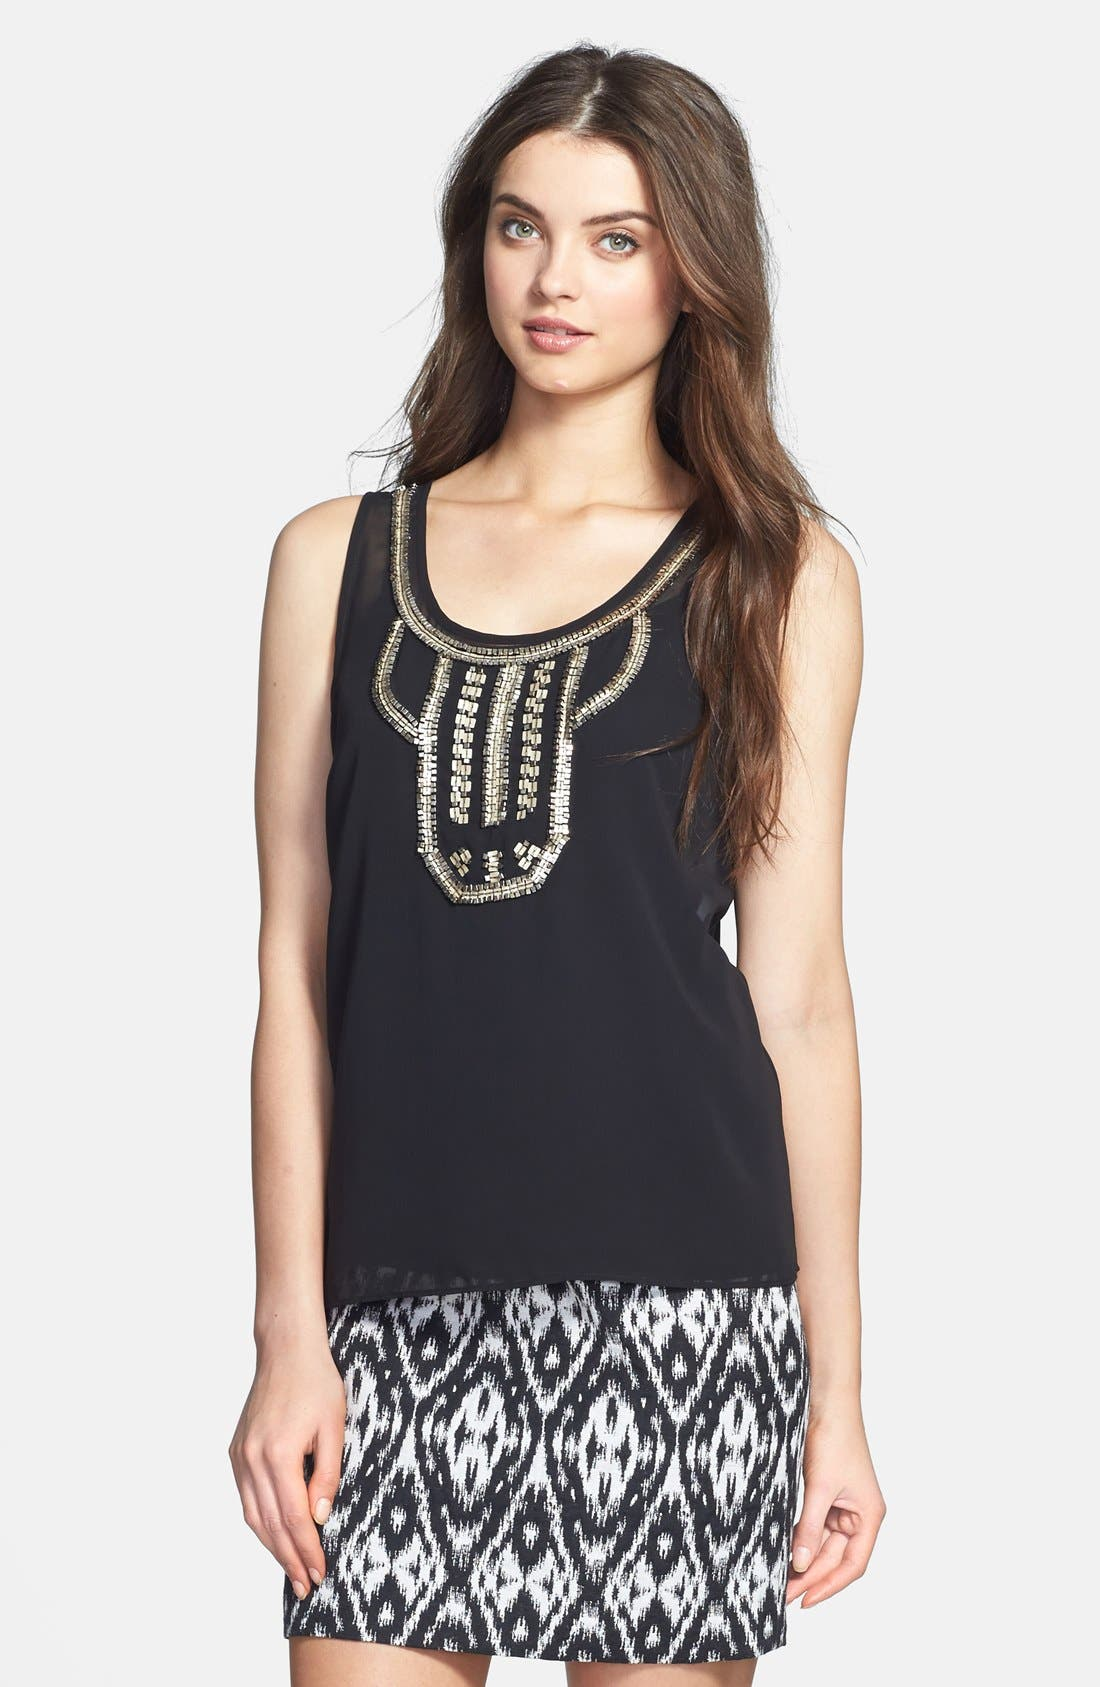 Alternate Image 1 Selected - Vince Camuto Embellished Sleeveless Blouse (Petite)